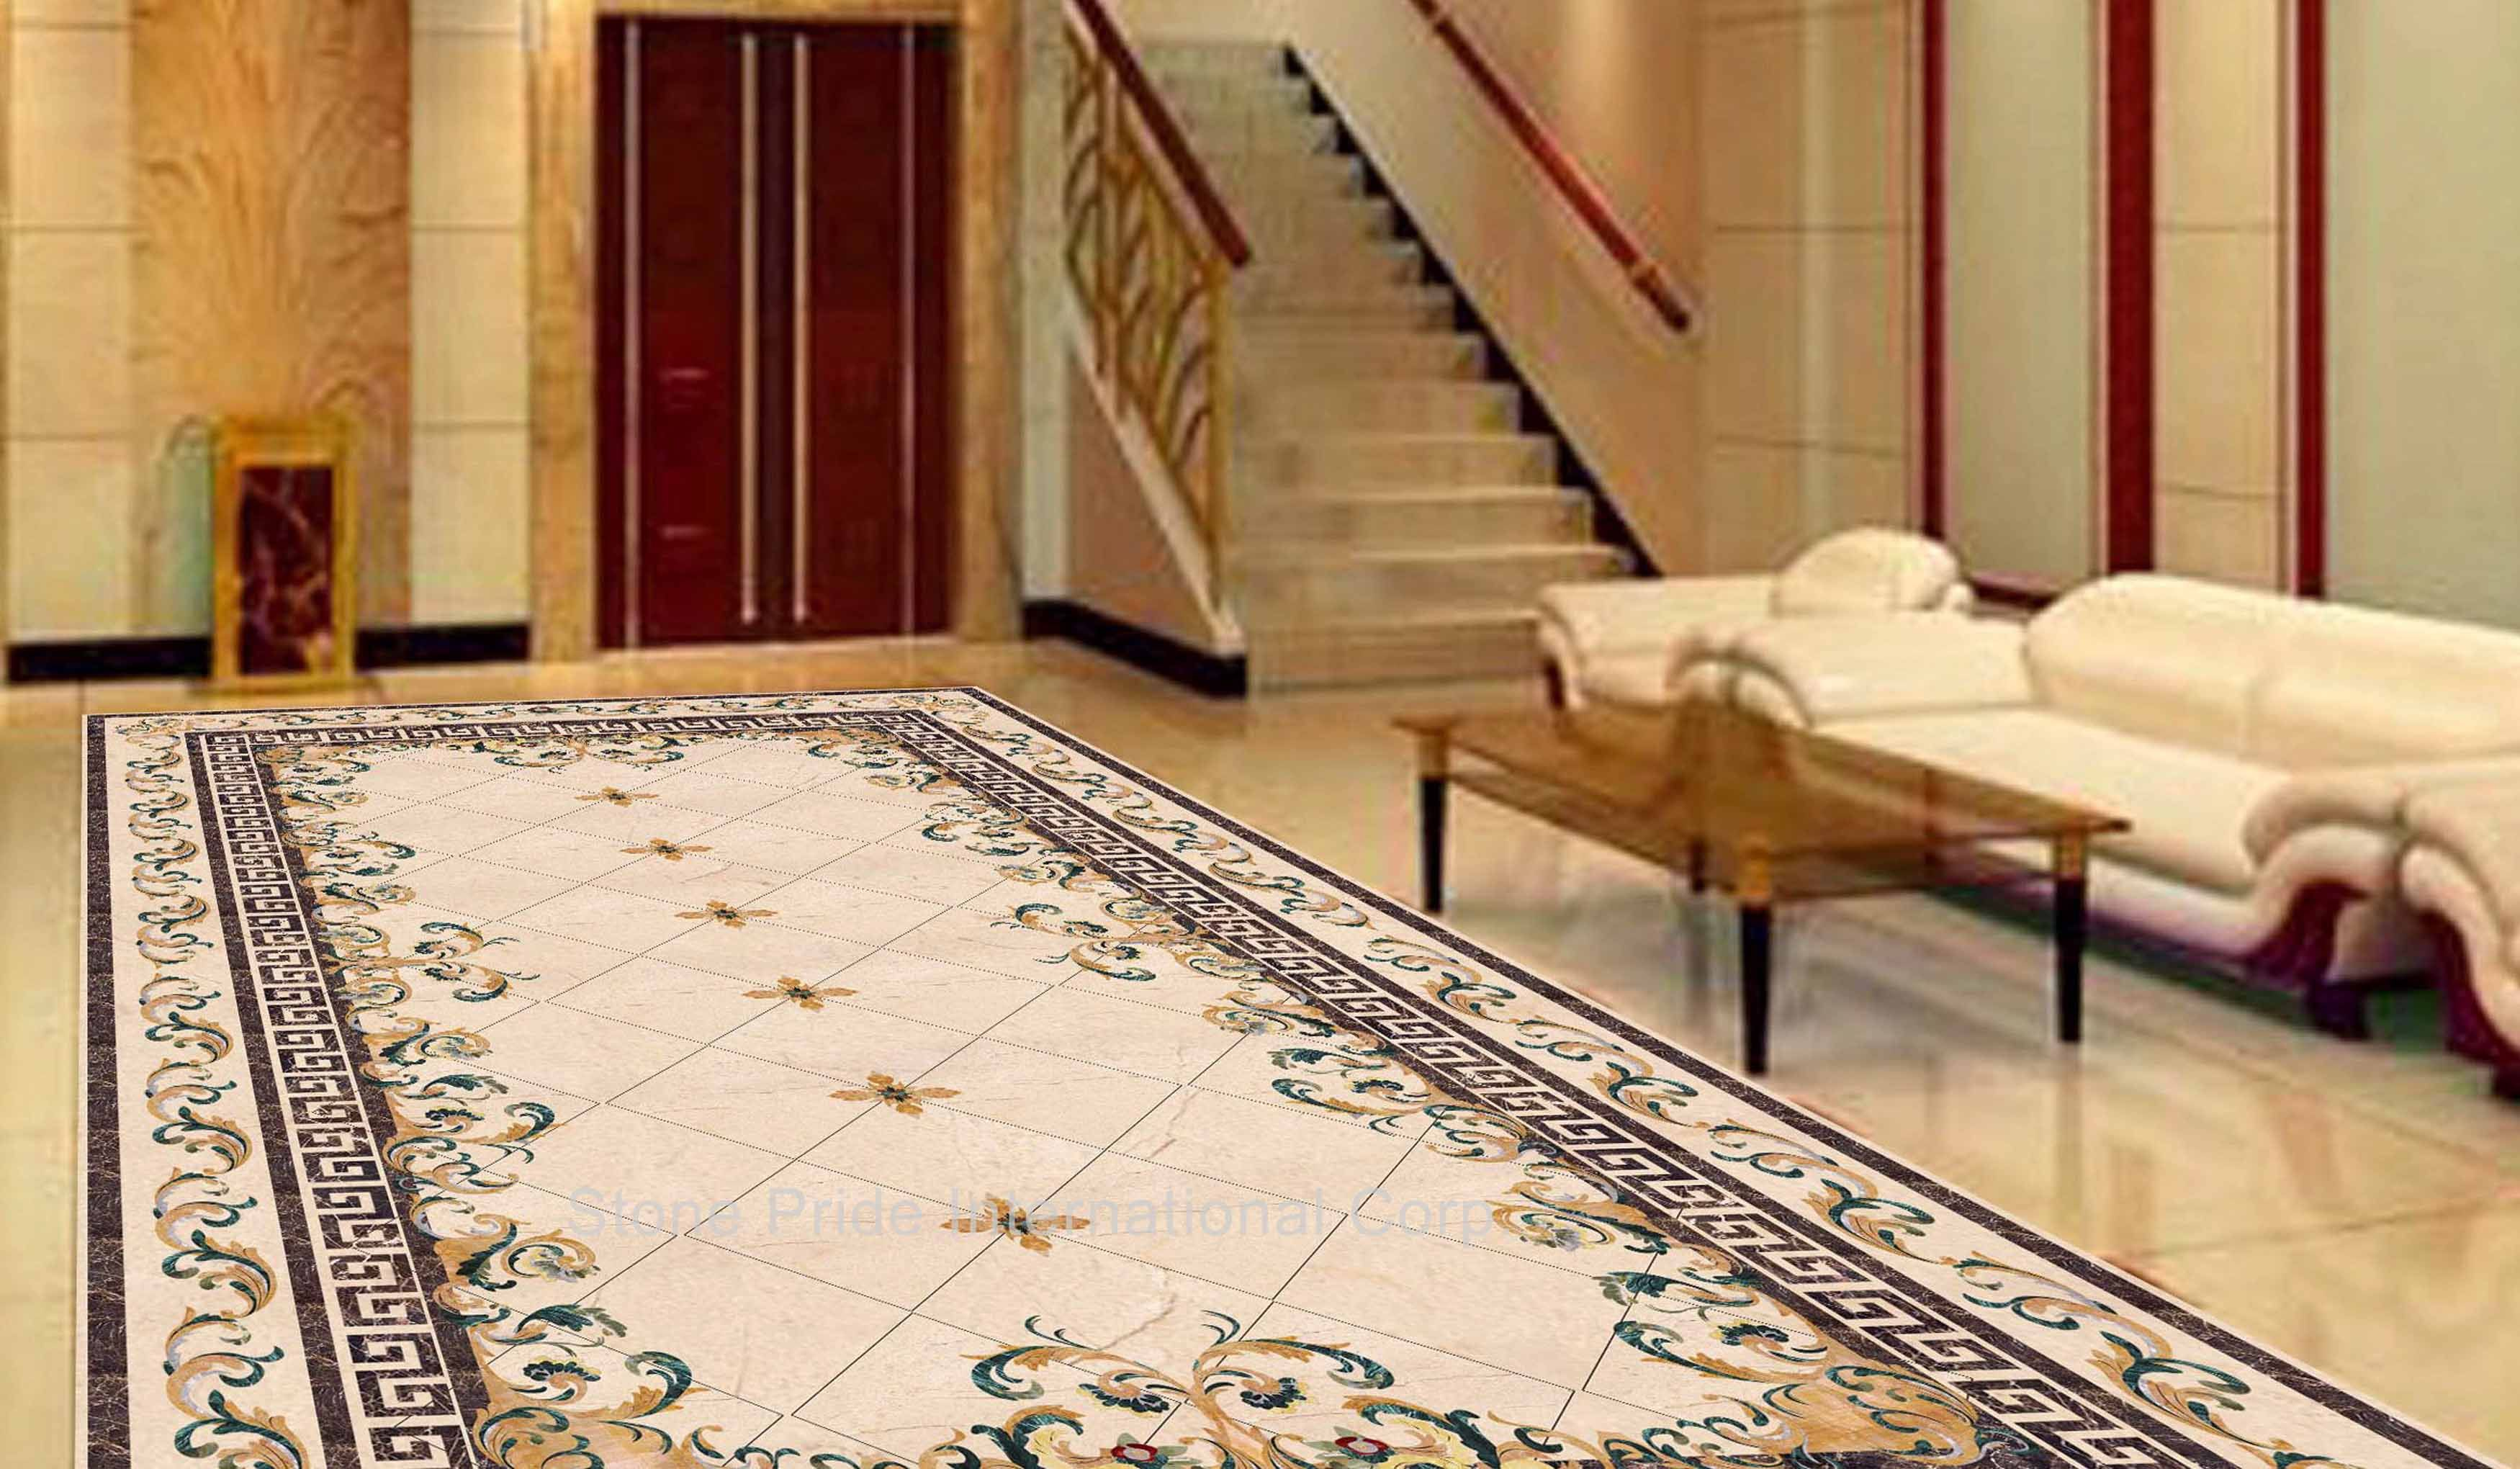 Floor design floor design floor design ideas floor for Floor tiles design